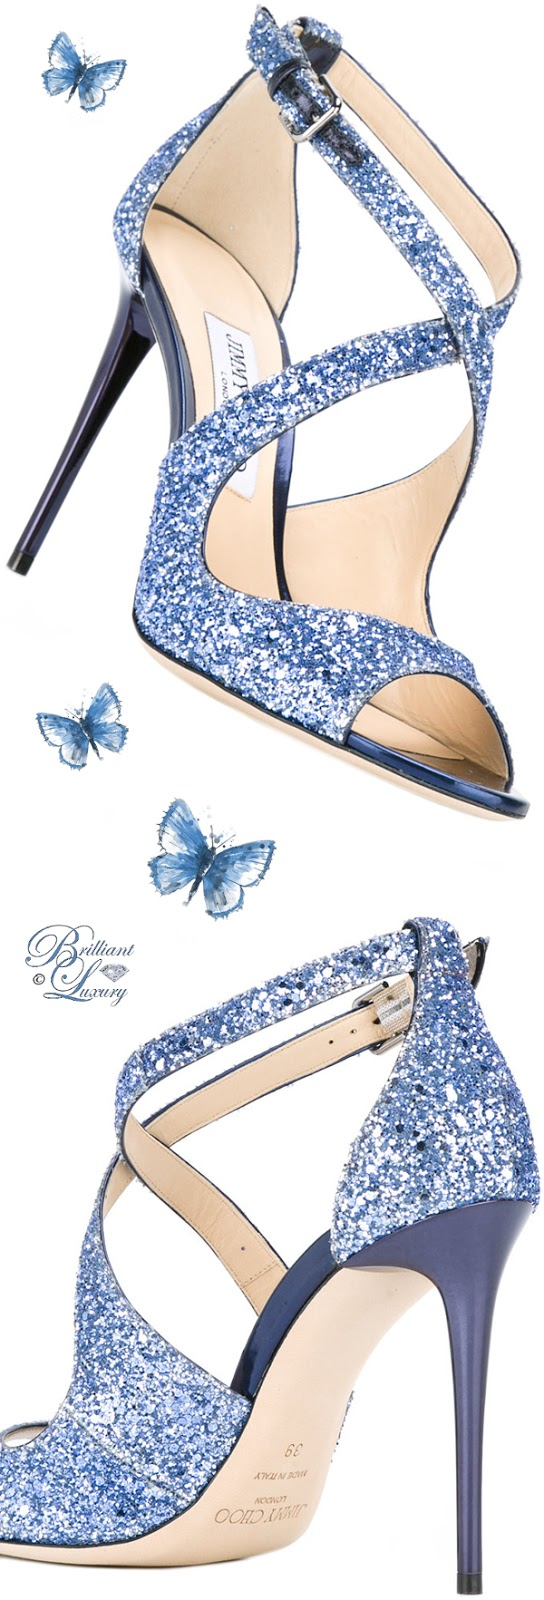 Brilliant Luxury ♦ Jimmy Choo blue glitter Emily Sandals